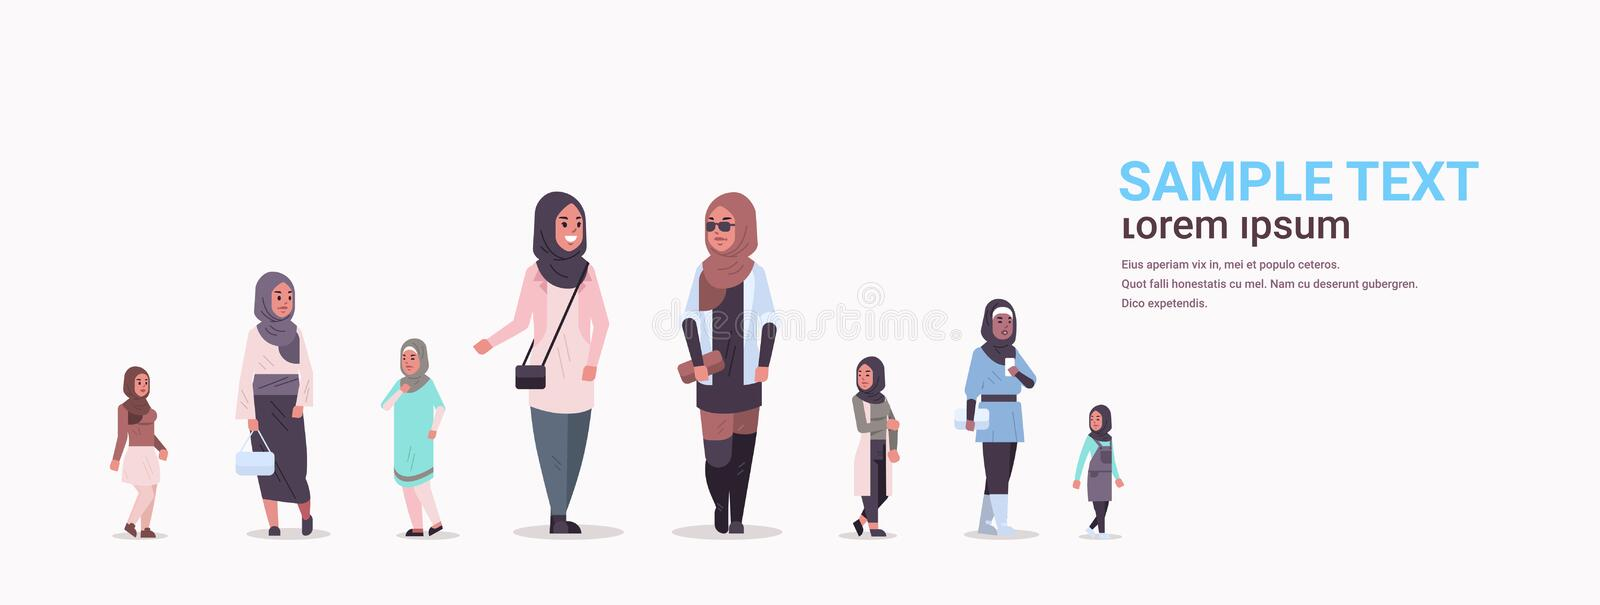 Different arabic women group standing together arab businesswomen wearing traditional clothes female arabian cartoon vector illustration